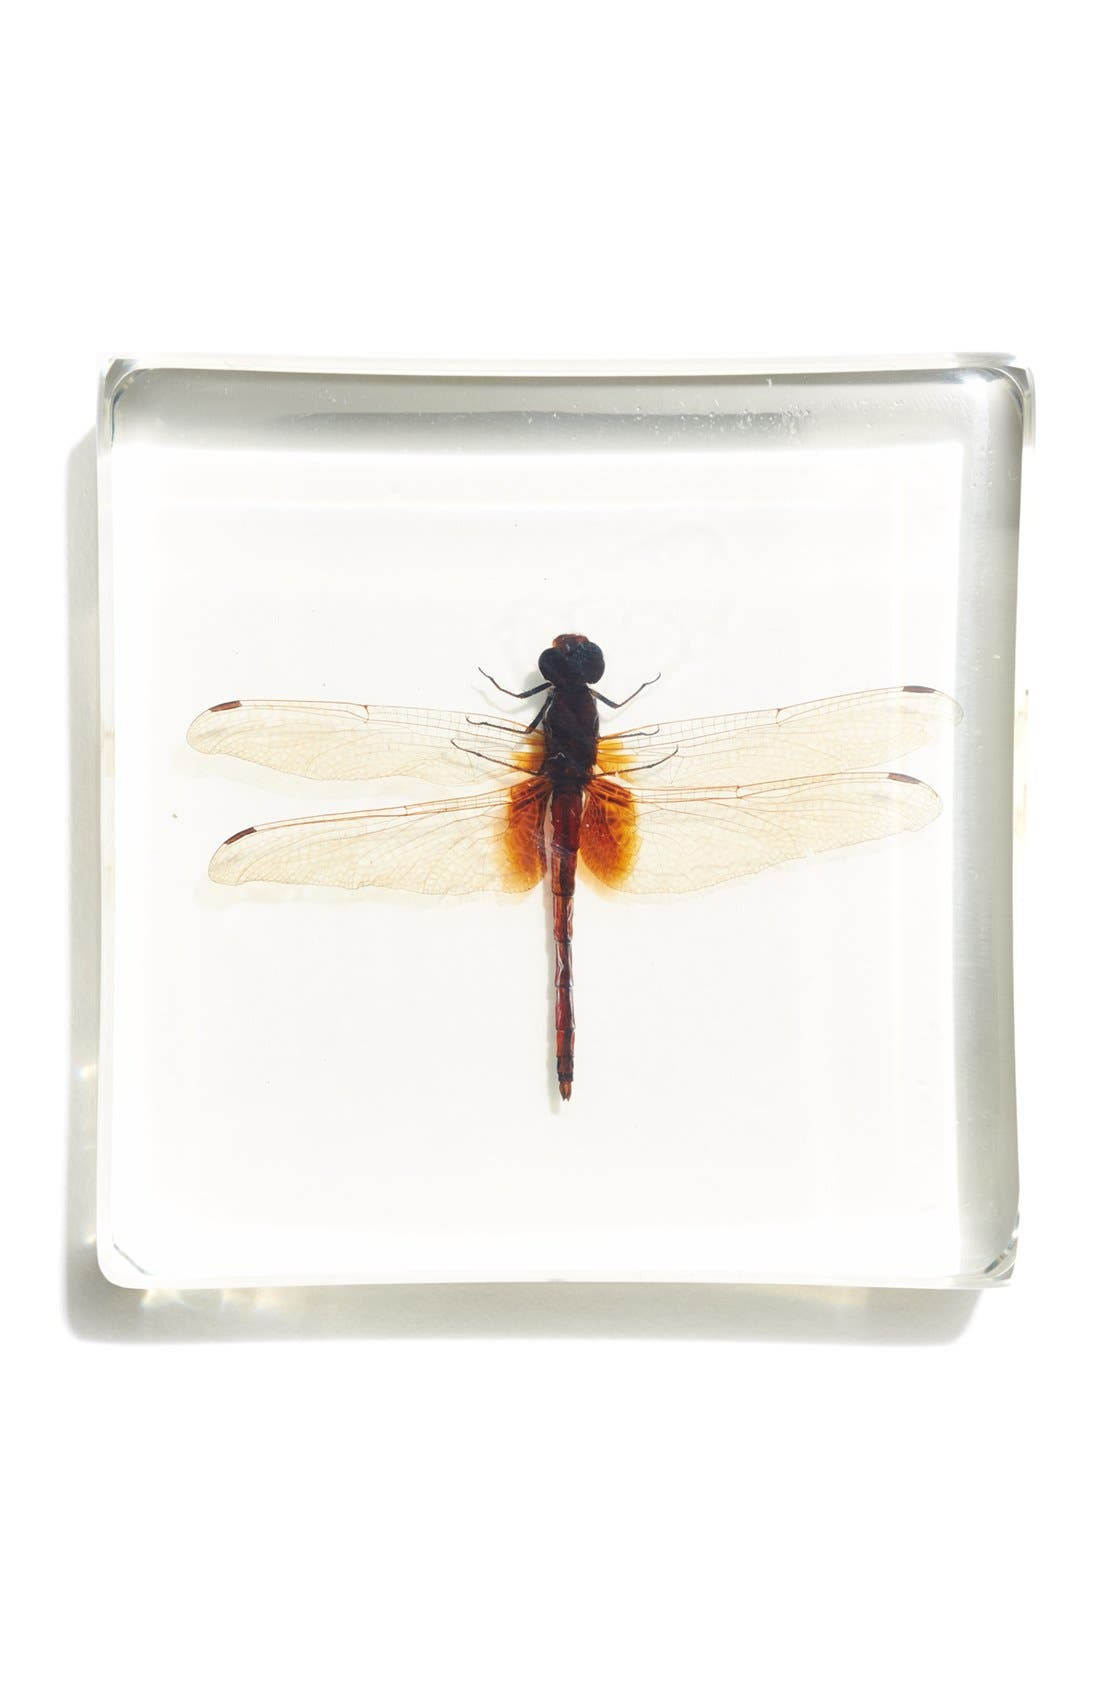 Ditch Jewel Dragonfly in Resin,                             Main thumbnail 1, color,                             960